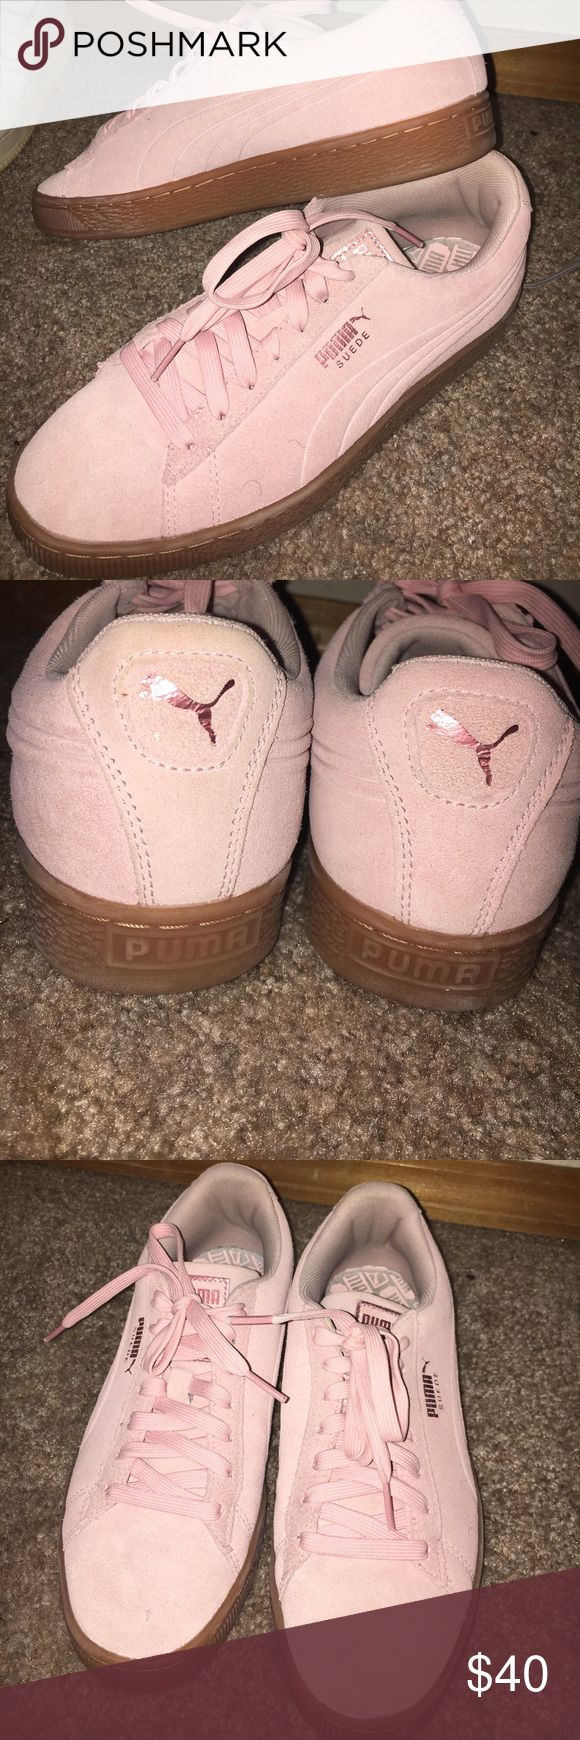 Pink pumas Pink pumas , worn one time Puma Shoes Sneakers